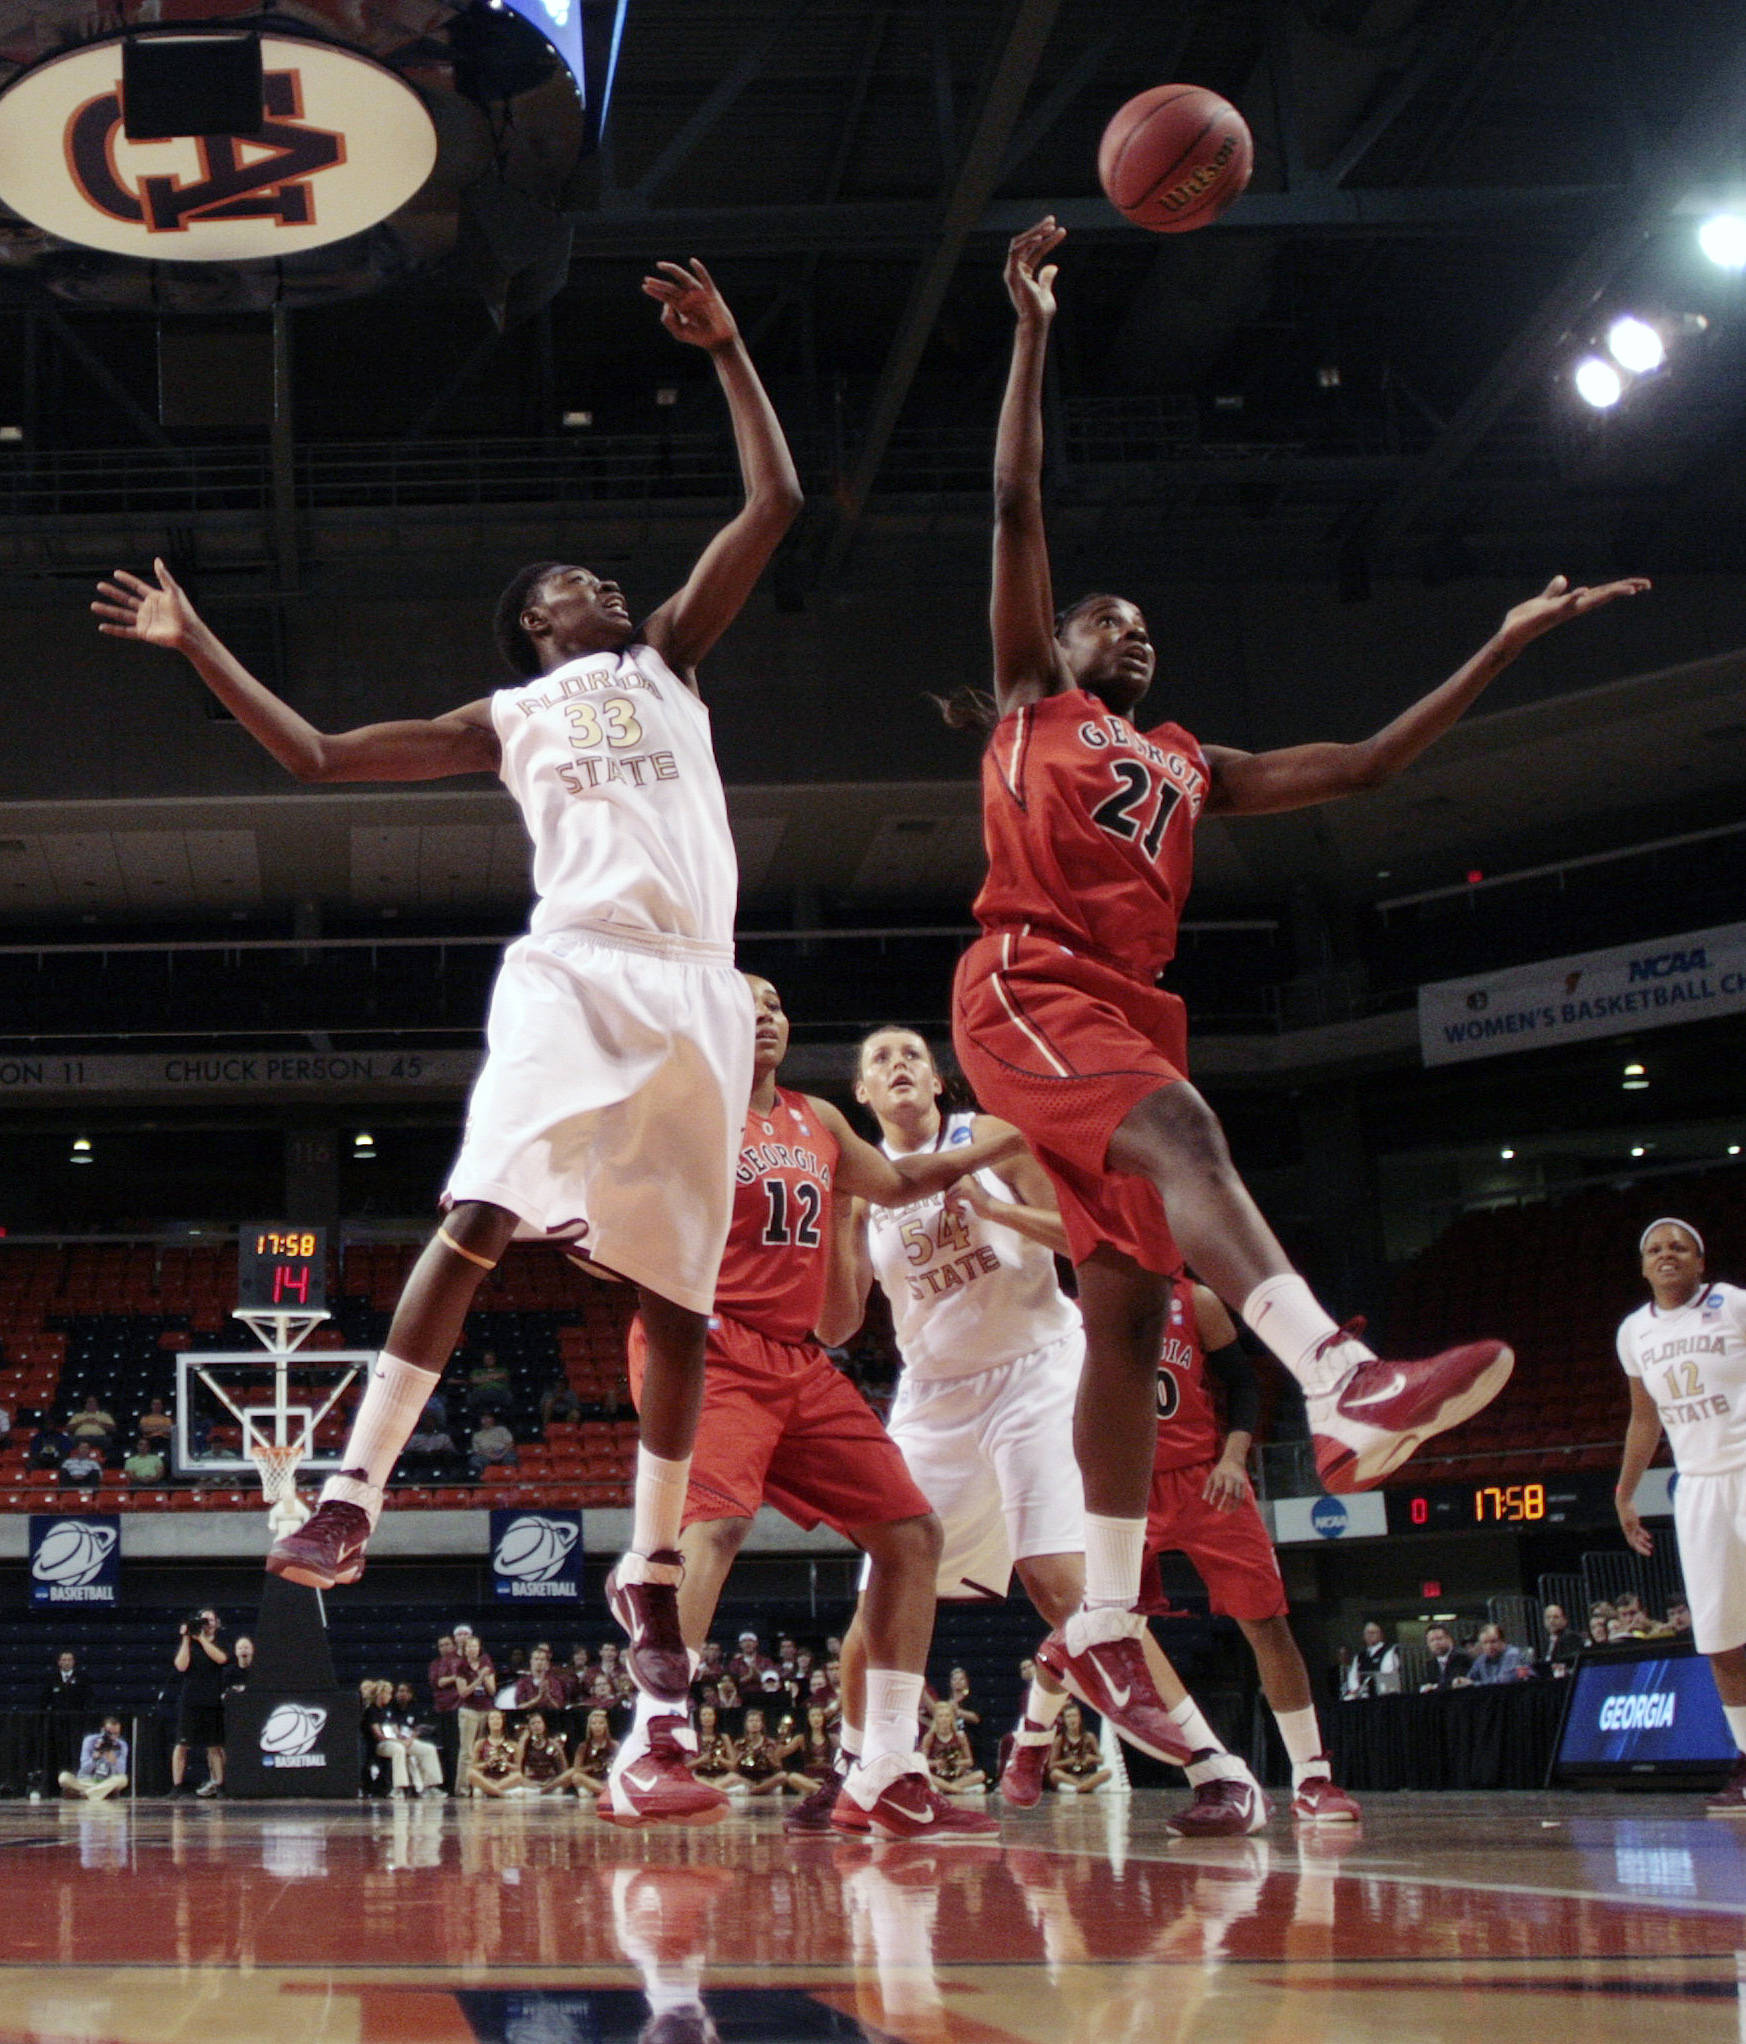 Florida State's Natasha Howard (33) battles Georgia's Porsha Phillips (21) for a rebound in the first half of a second-round NCAA women's college basketball tournament game at Auburn Arena in Auburn, Ala., Tuesday, March 22, 2011. (AP Photo/Dave Martin)